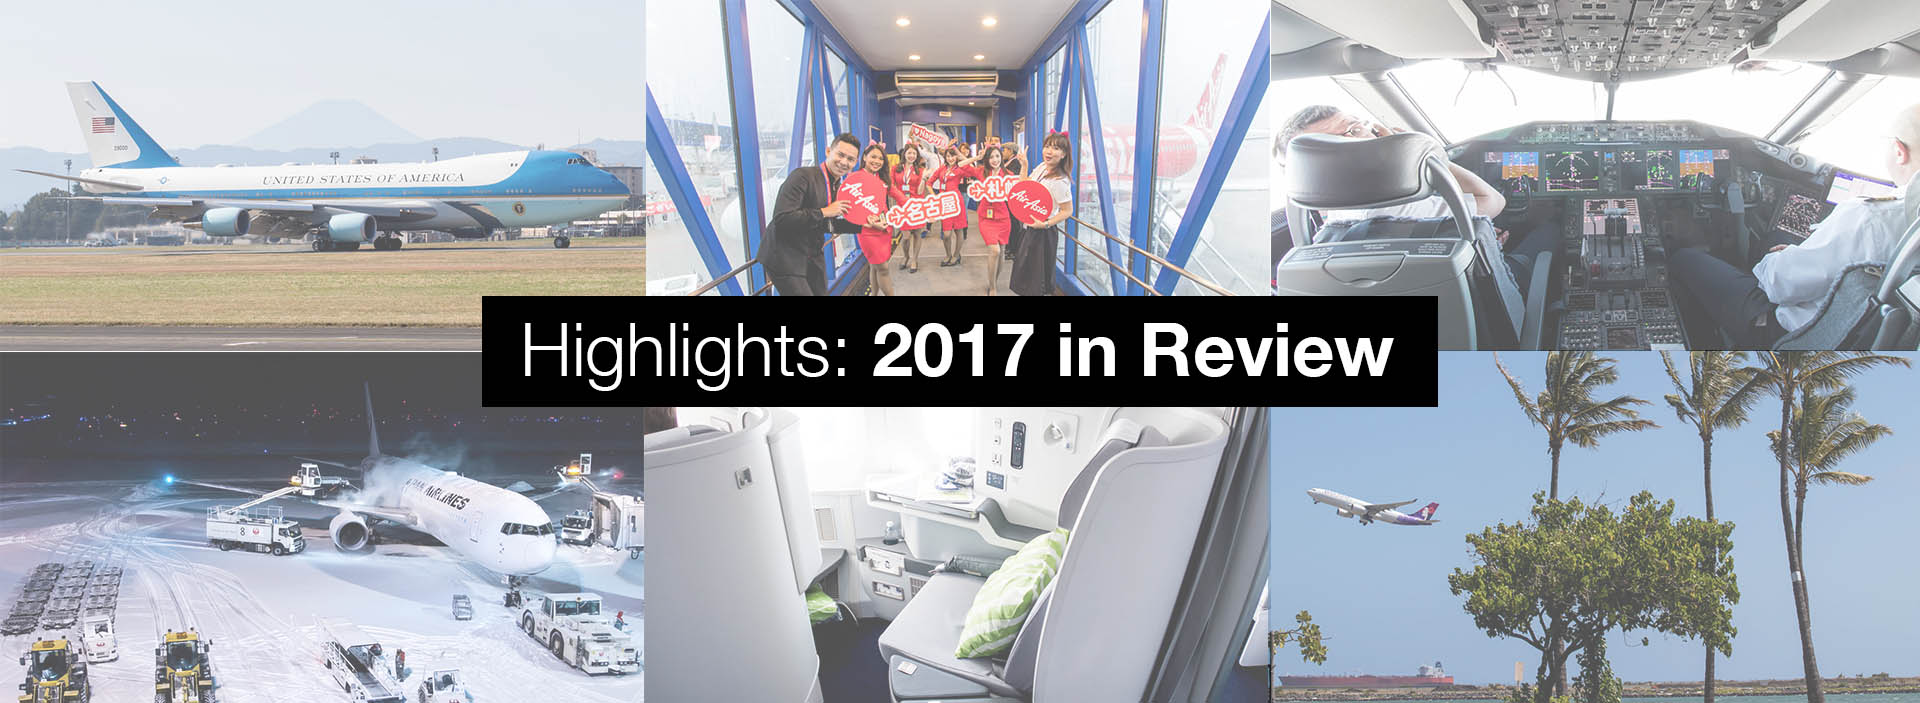 2017 in Review: Looking Back at My Highlights of Last Year